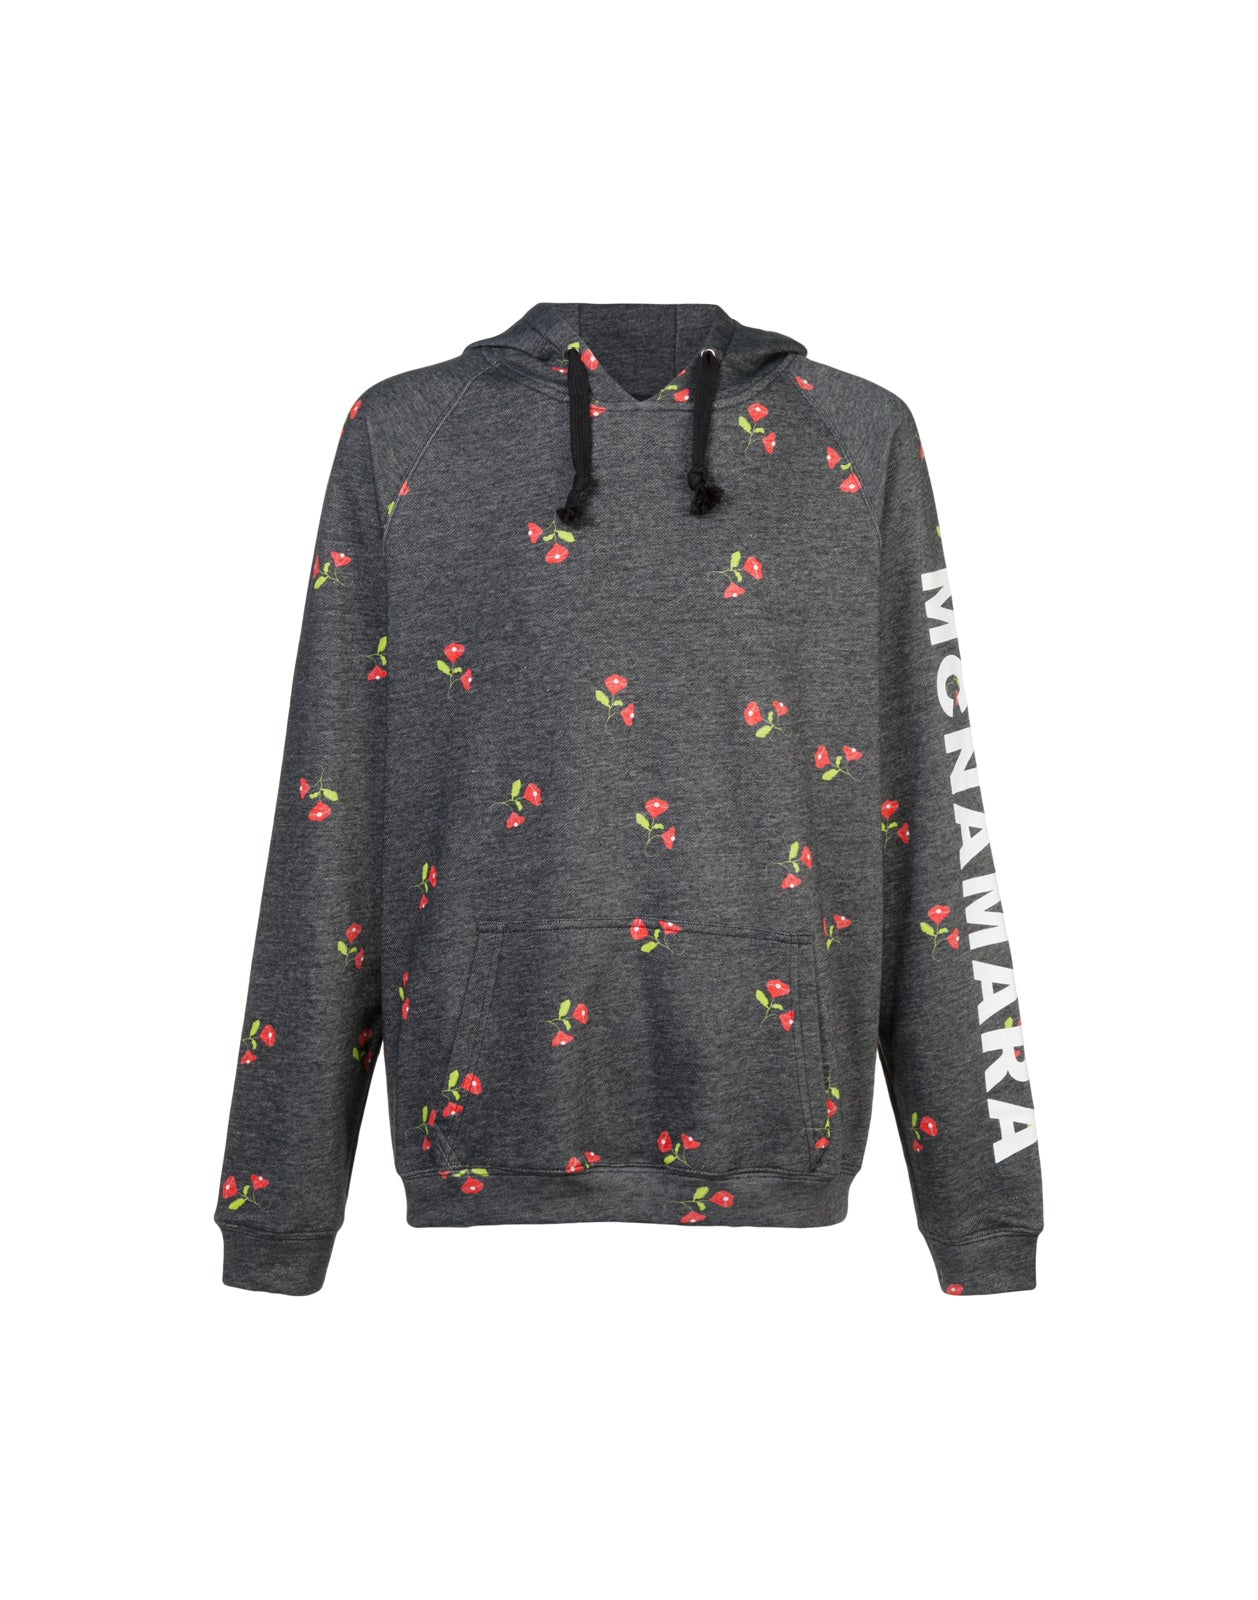 Grey hoodie sweatshirt with red an green flowers.